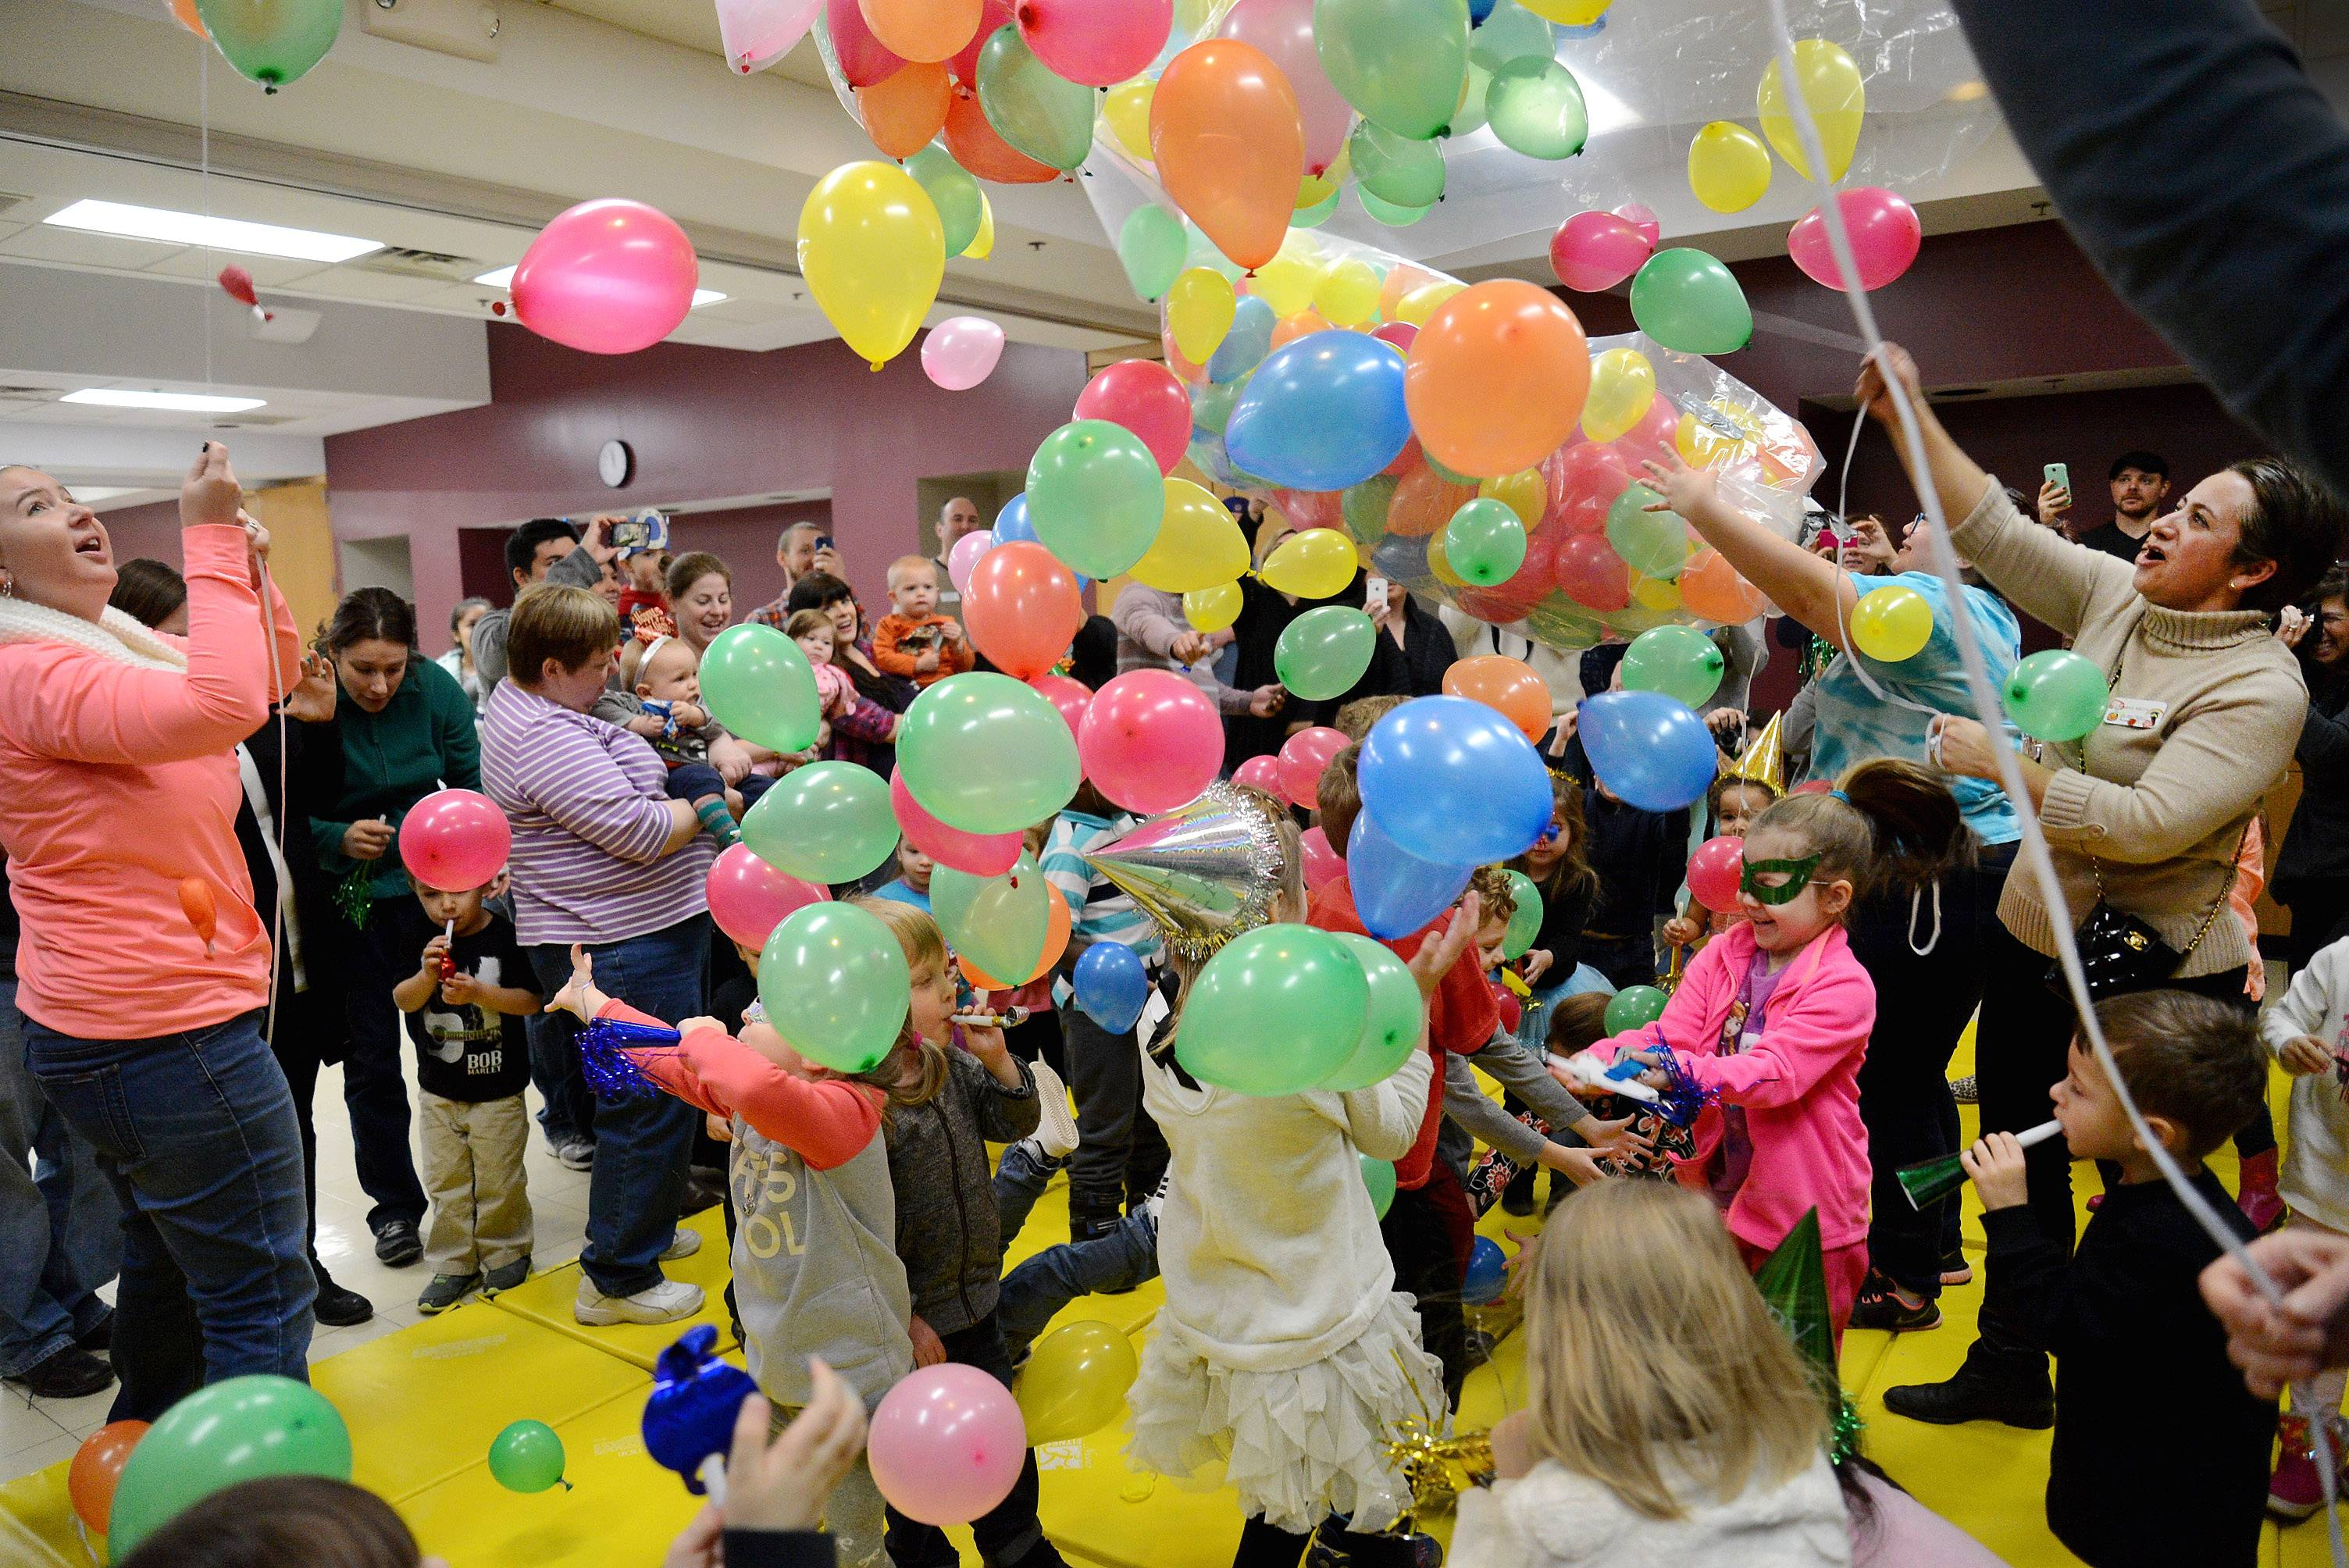 Des Plaines Park District staff release 400 balloons at noon during the second annual Preschool Noon Year's Eve Party at the Prairie Lakes Community Center in Des Plaines.